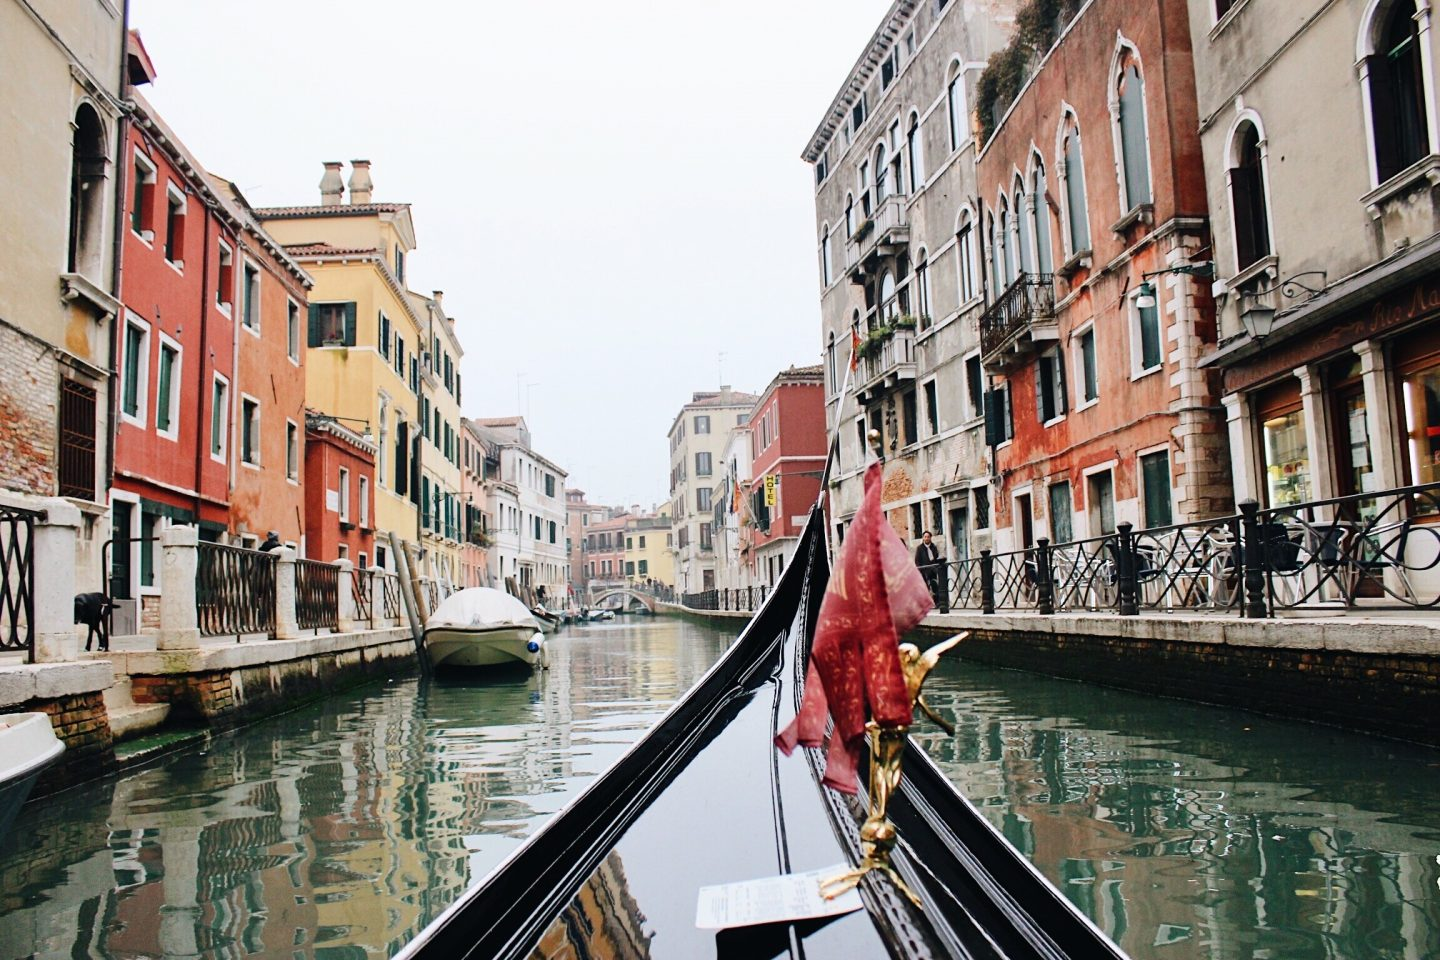 Photo from a gondola in the Venice canals